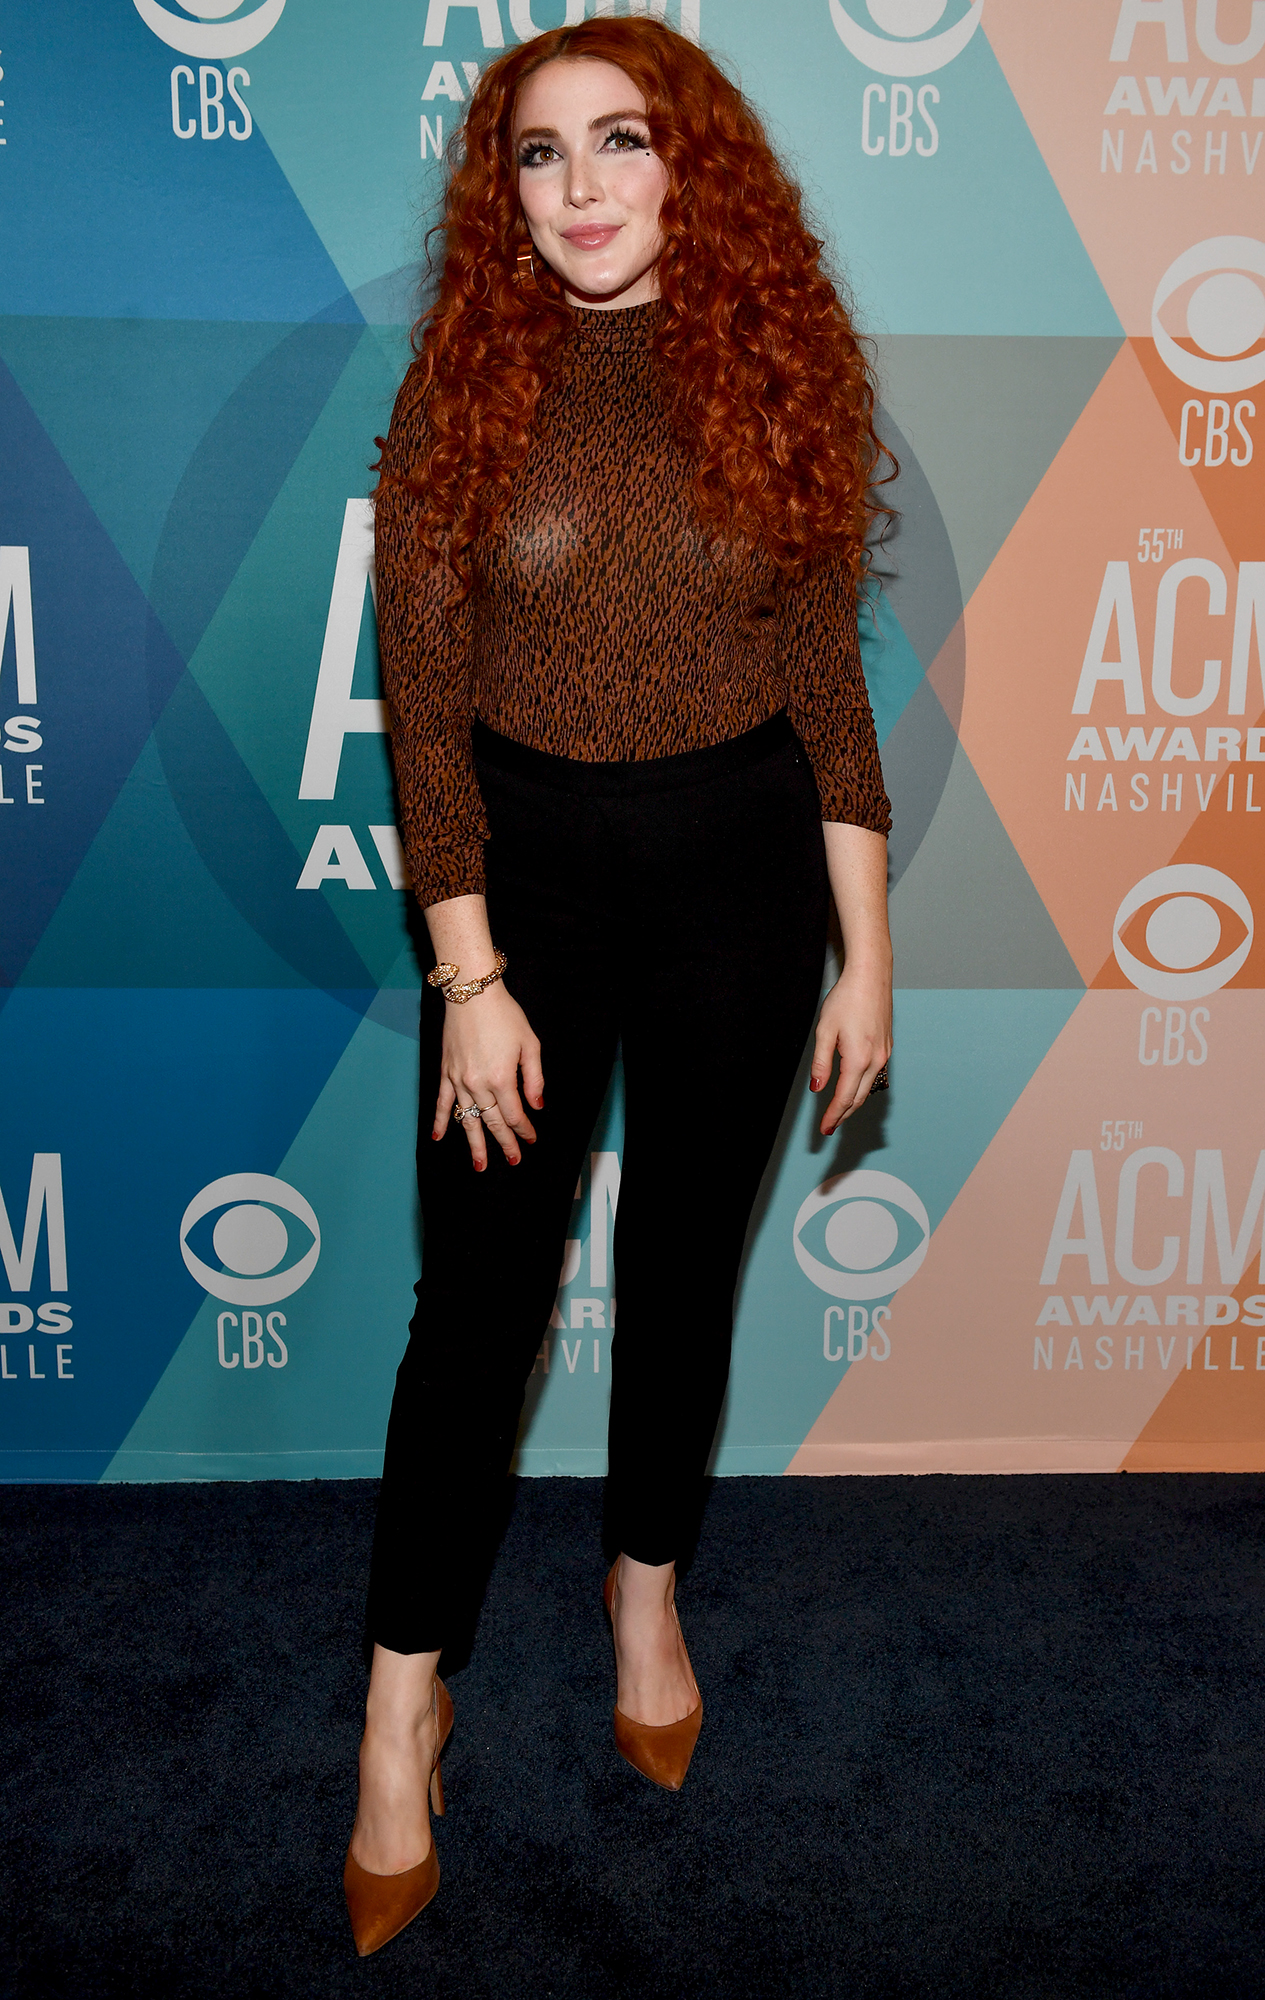 ACM Awards 수상자 Caylee Hammack on Therapy Through Music : 'Do n't Ever Be Ashamed'